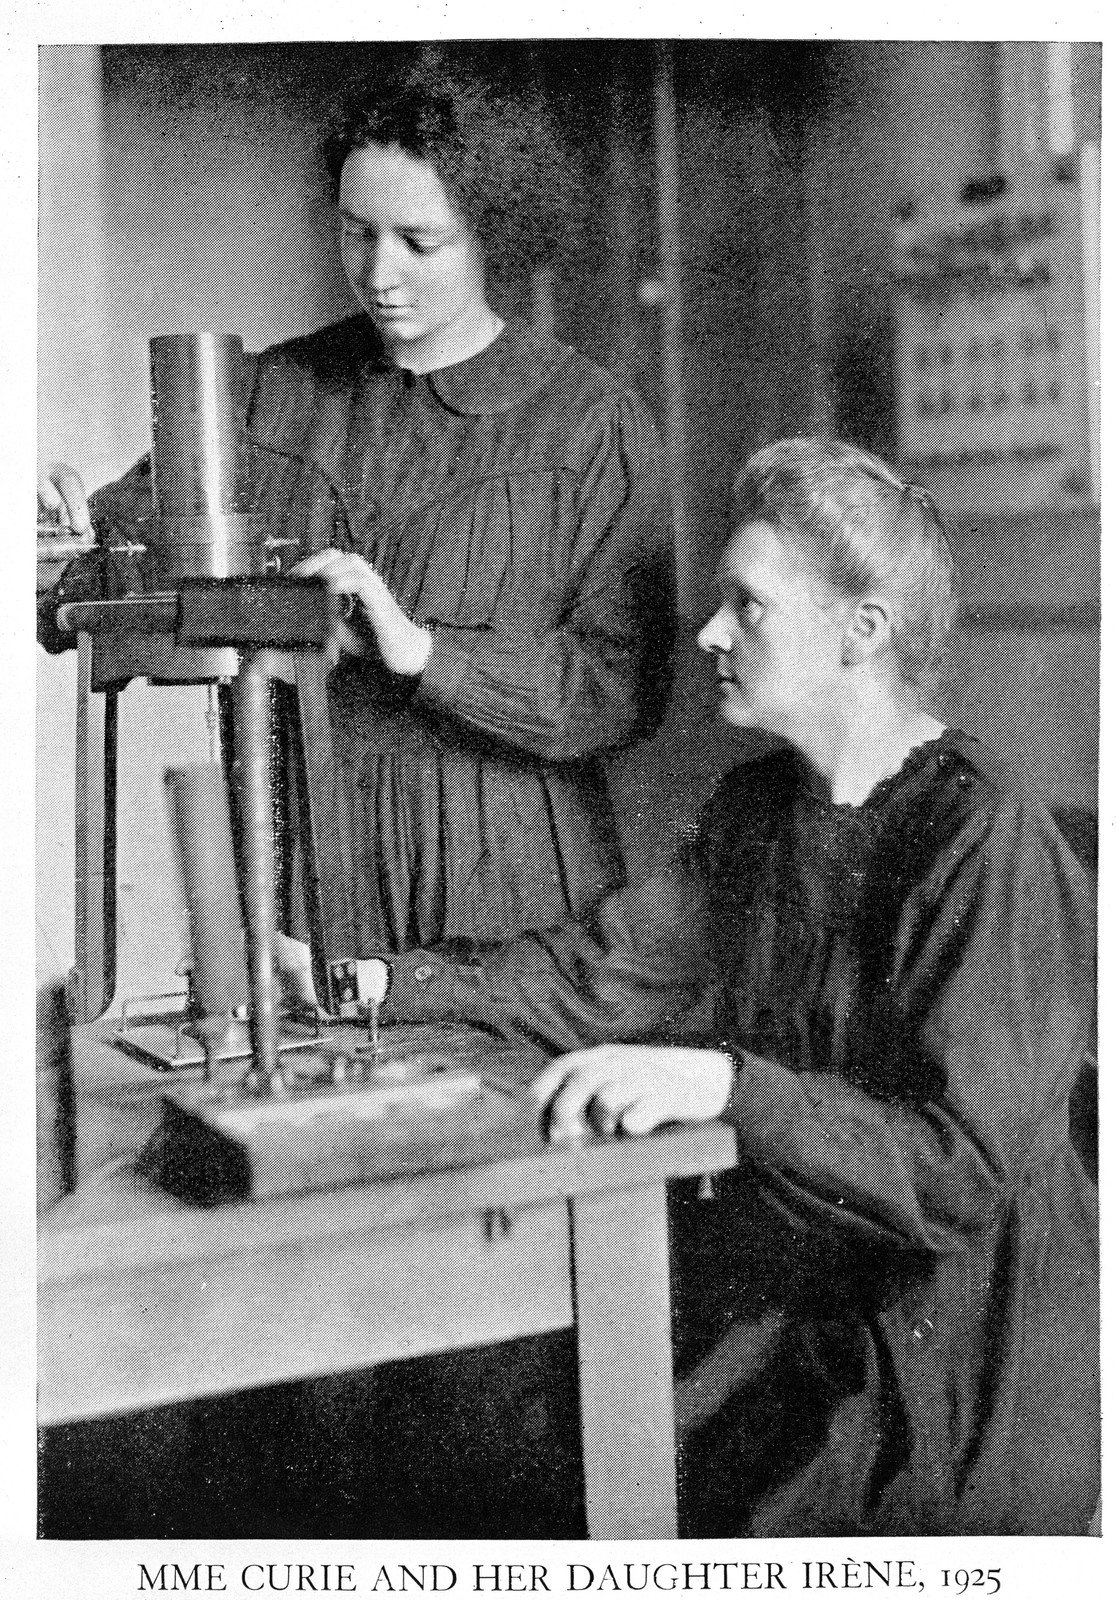 Portrait of Marie Curie and her daughter Irène, 1925, Unknown photographer, Wellcome Collection, CC BY